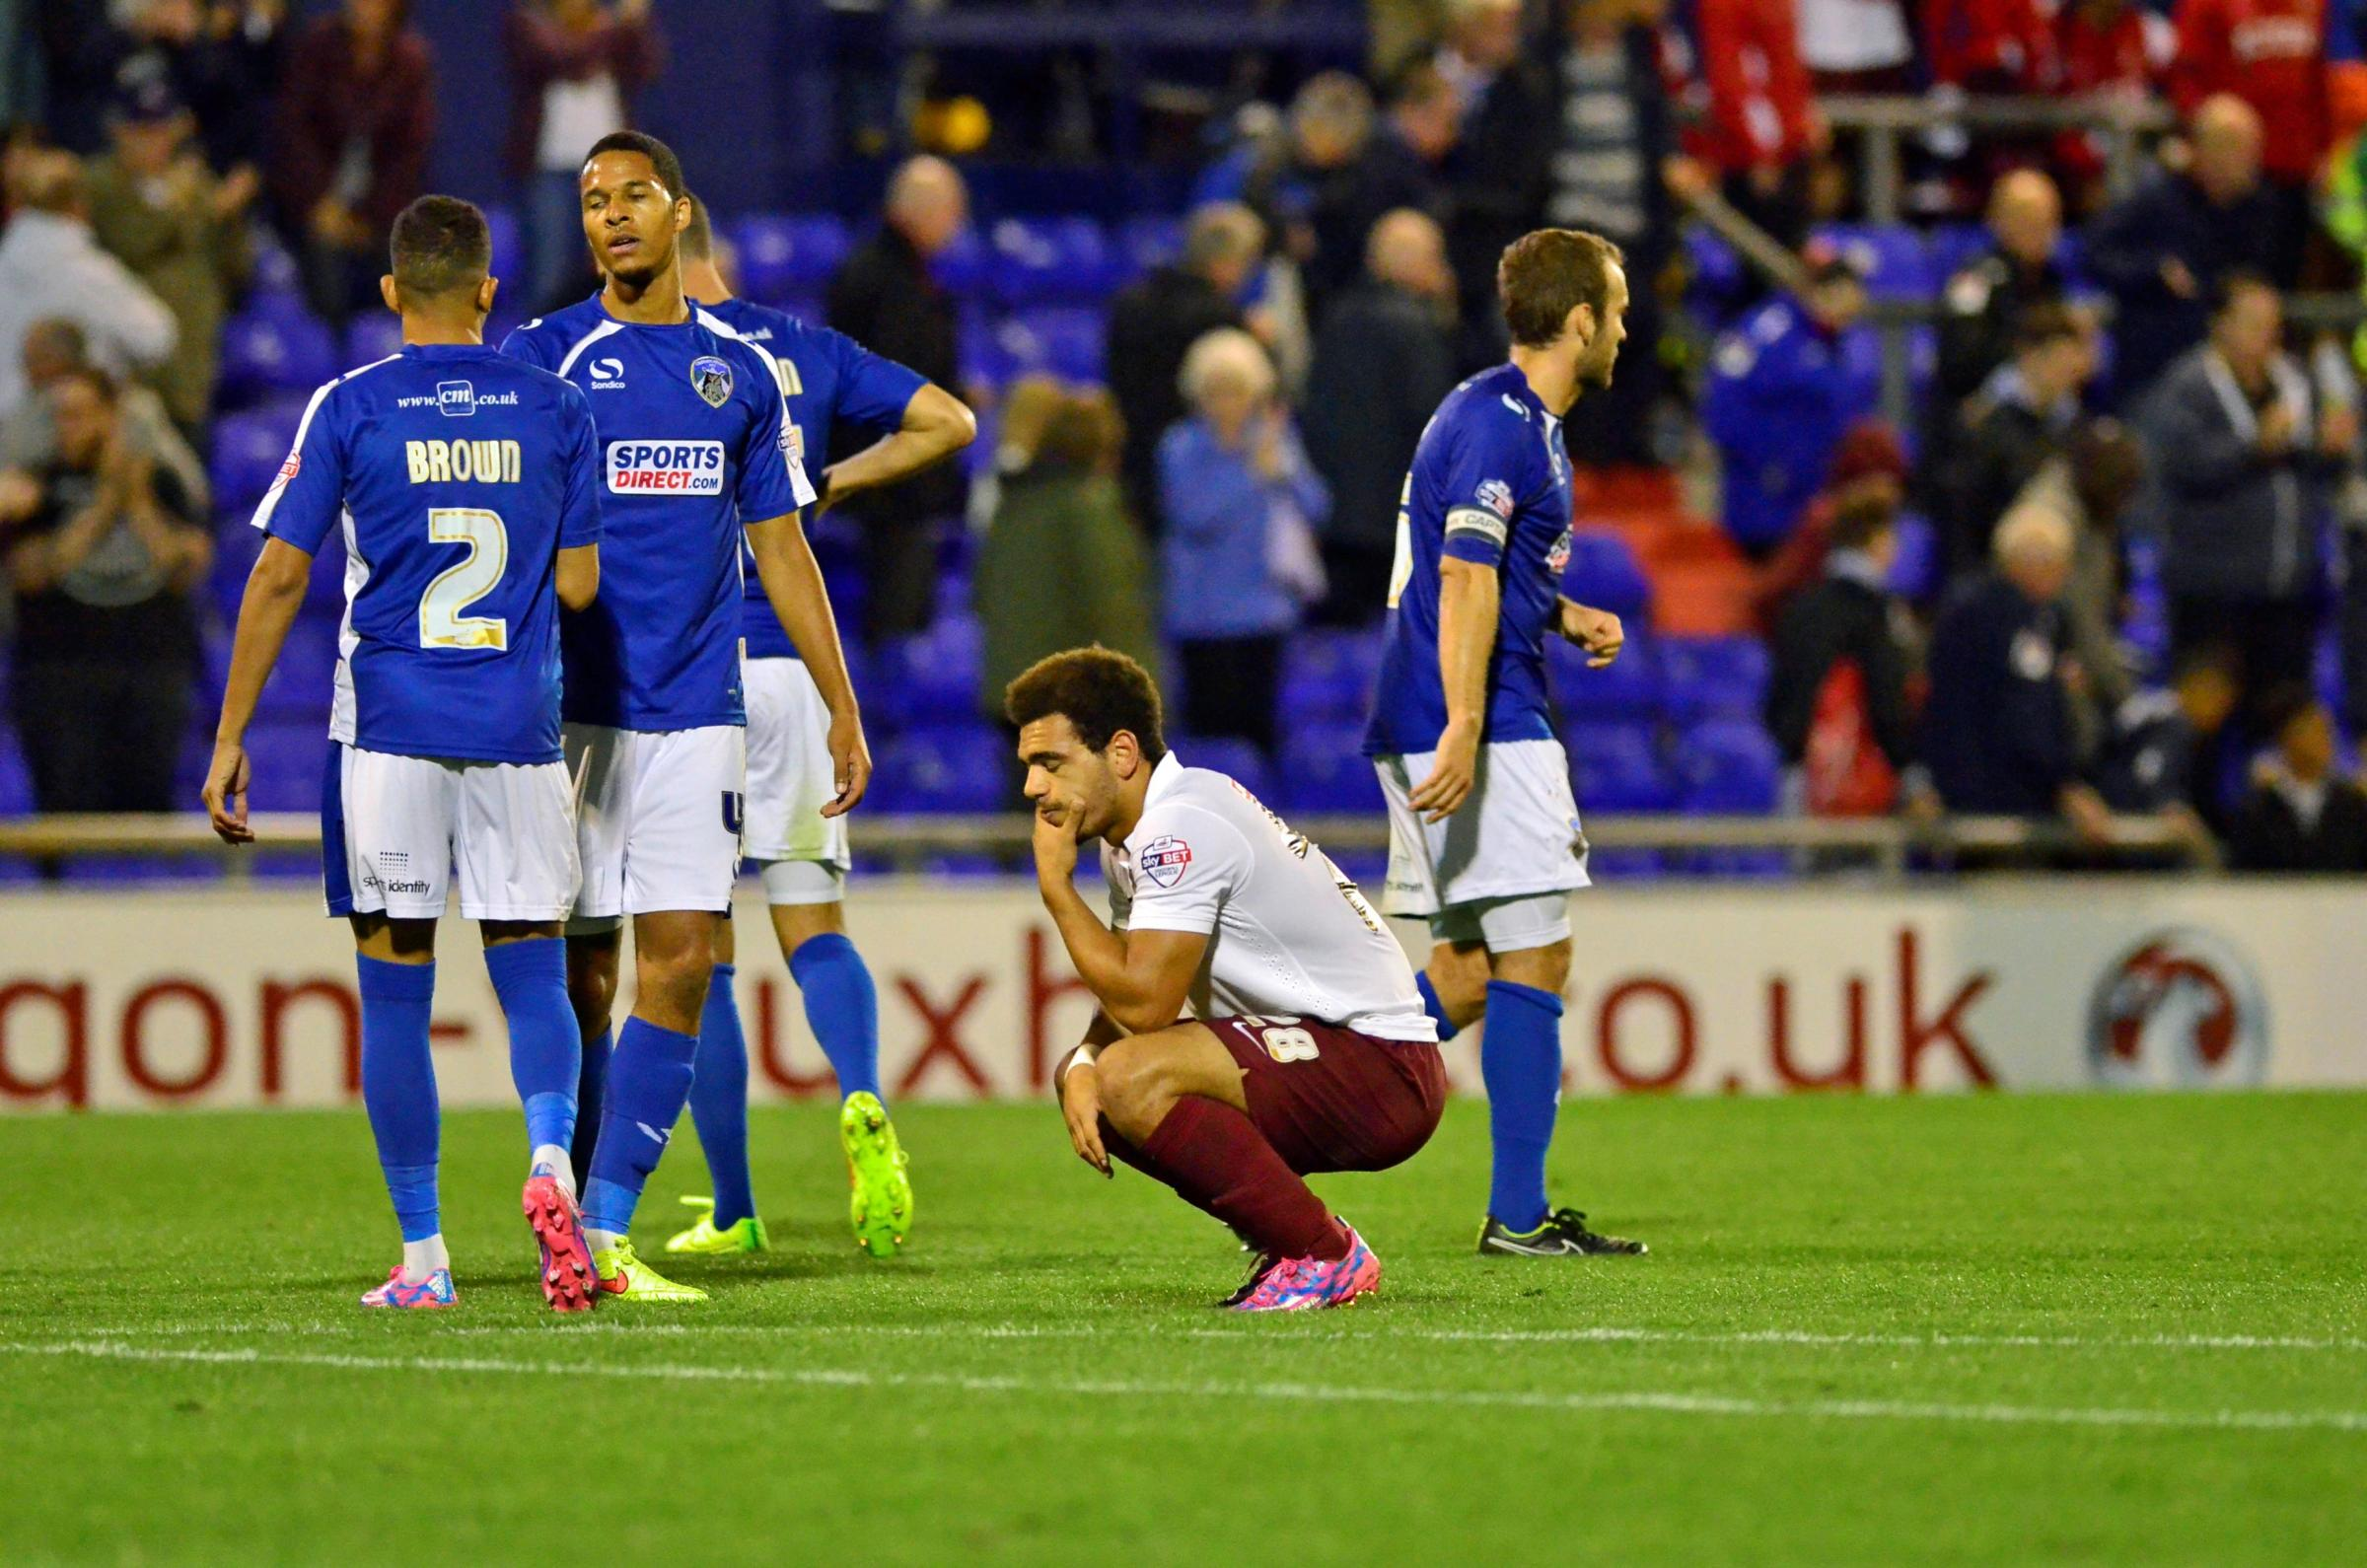 Mason Bennett shows his dismay after a late chance goes begging in City's last-gasp defeat in the JP Trophy at Oldham